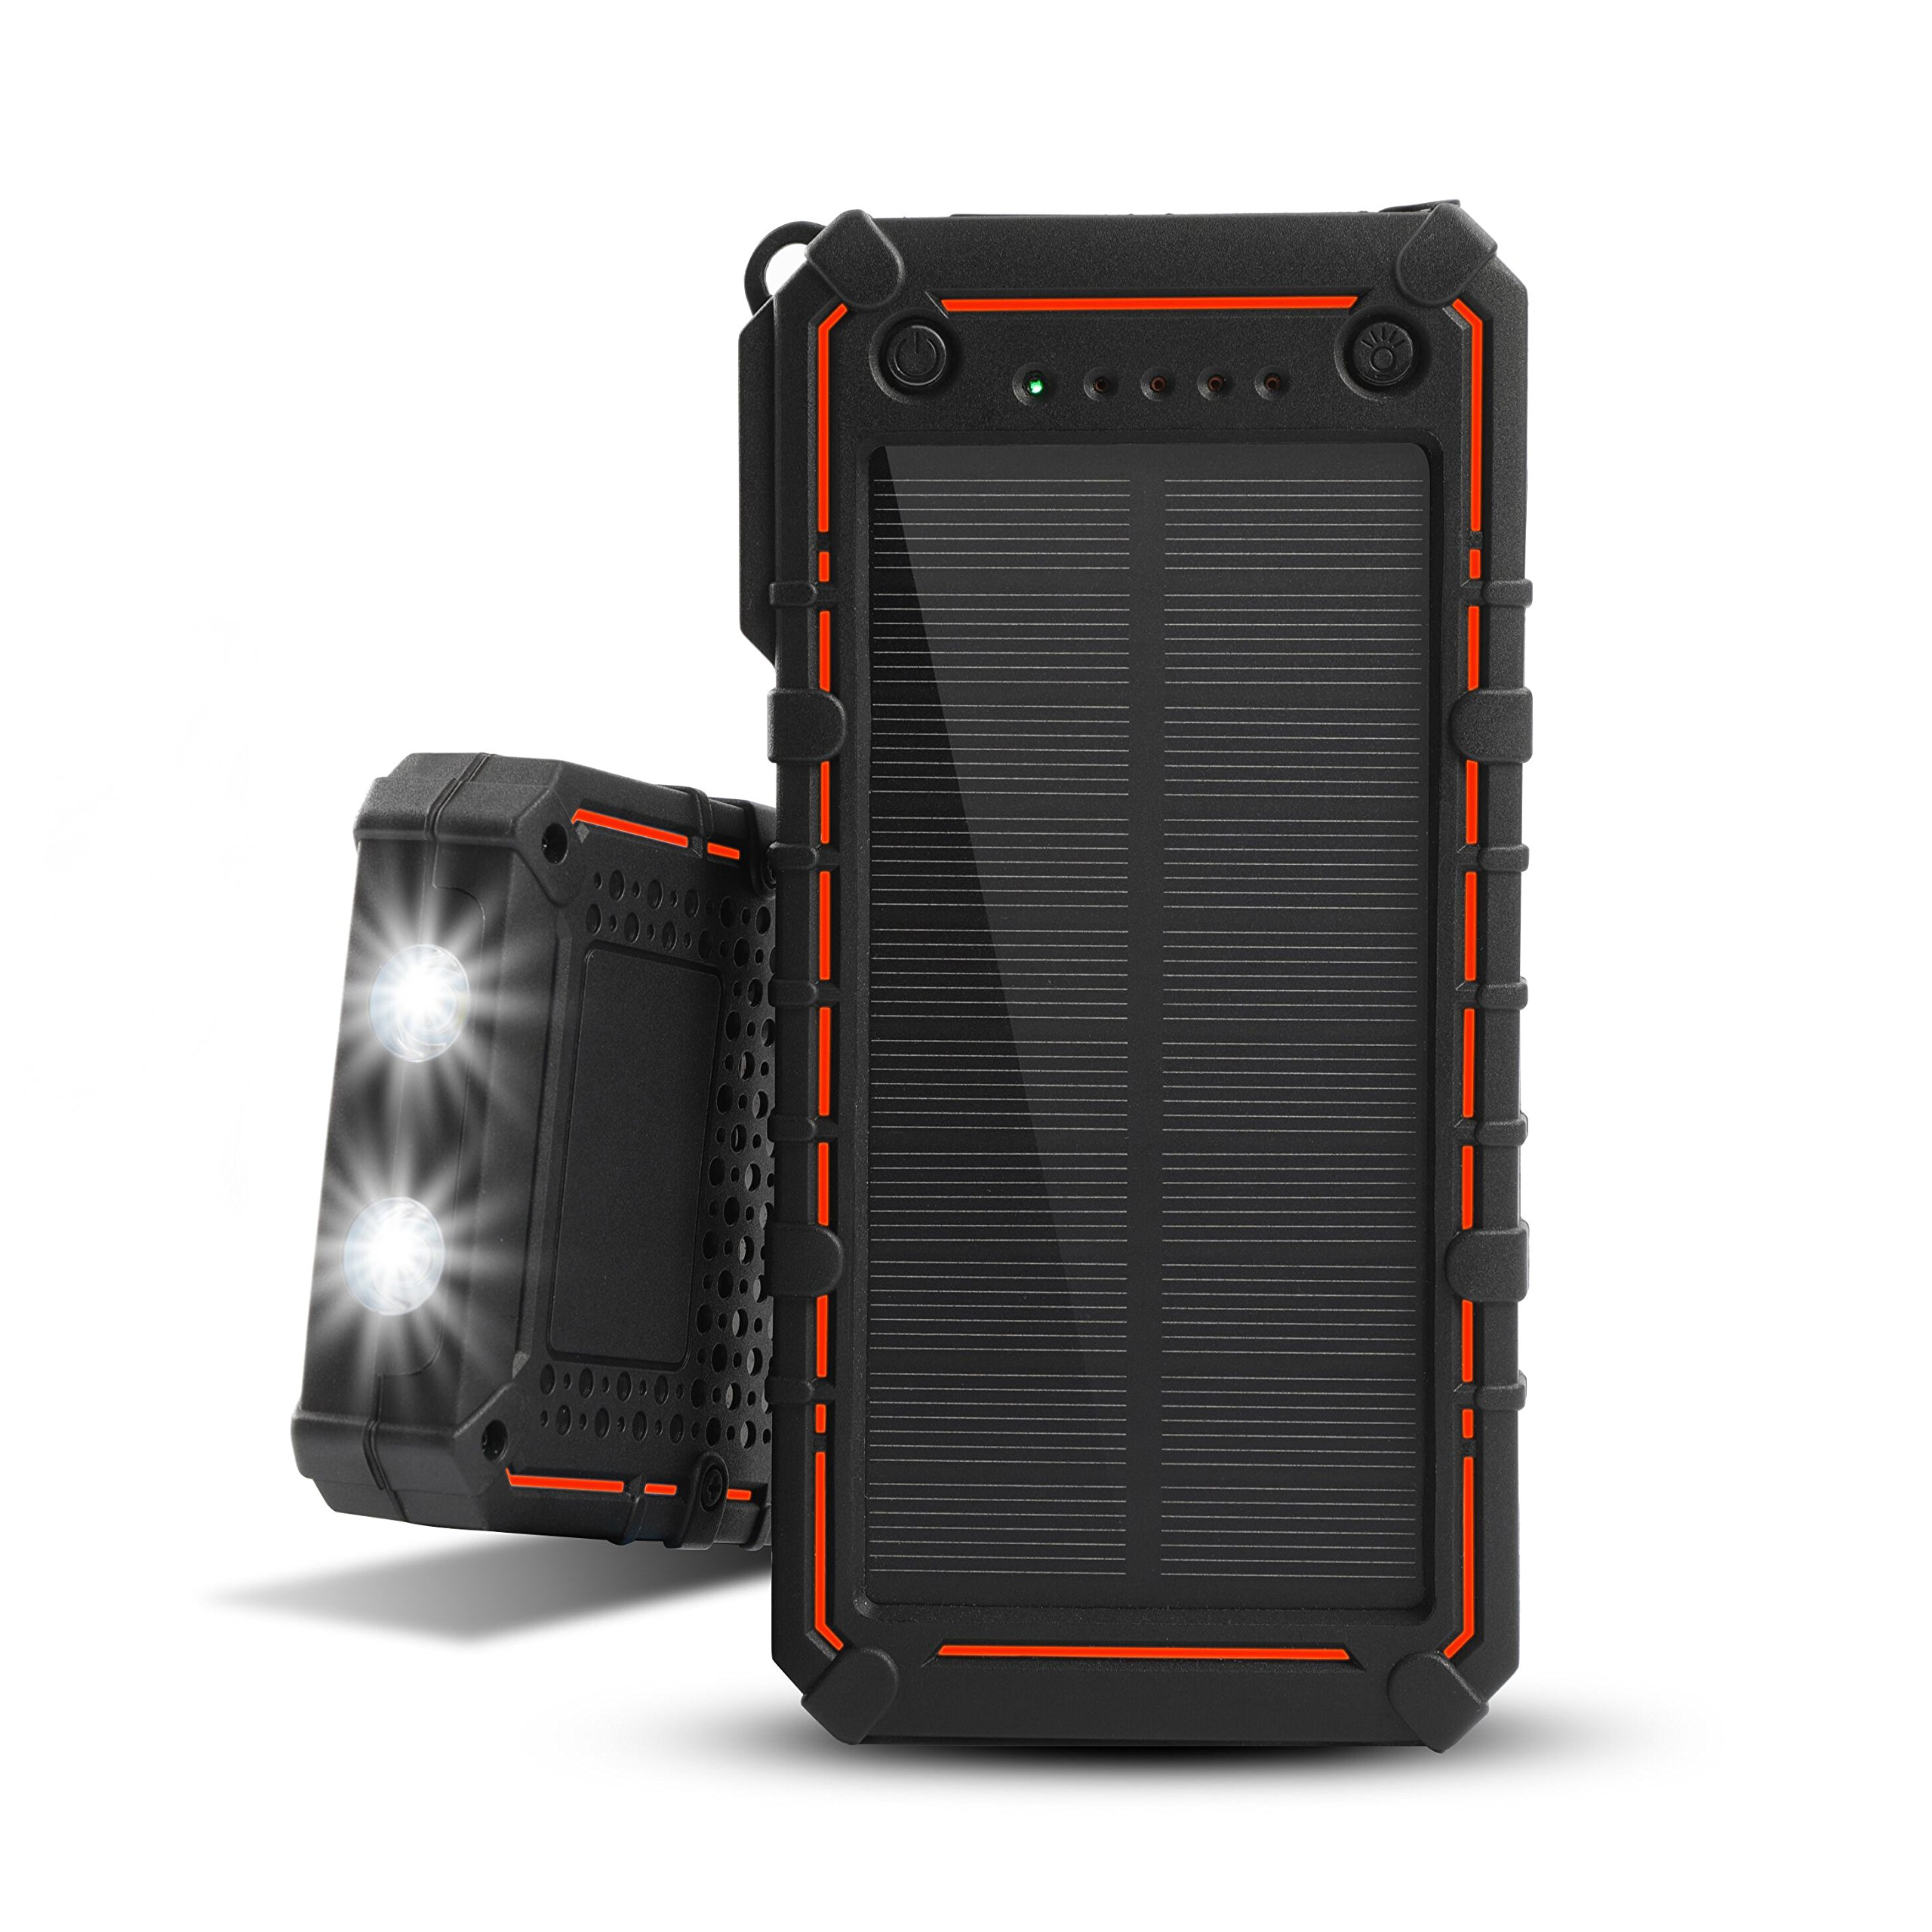 Solar Charger 13500mAh,WBPINE Waterproof Power Bank Dual USB with 2 LED Flashlight for iPhone 8,Samsung,iPad and More(orange)